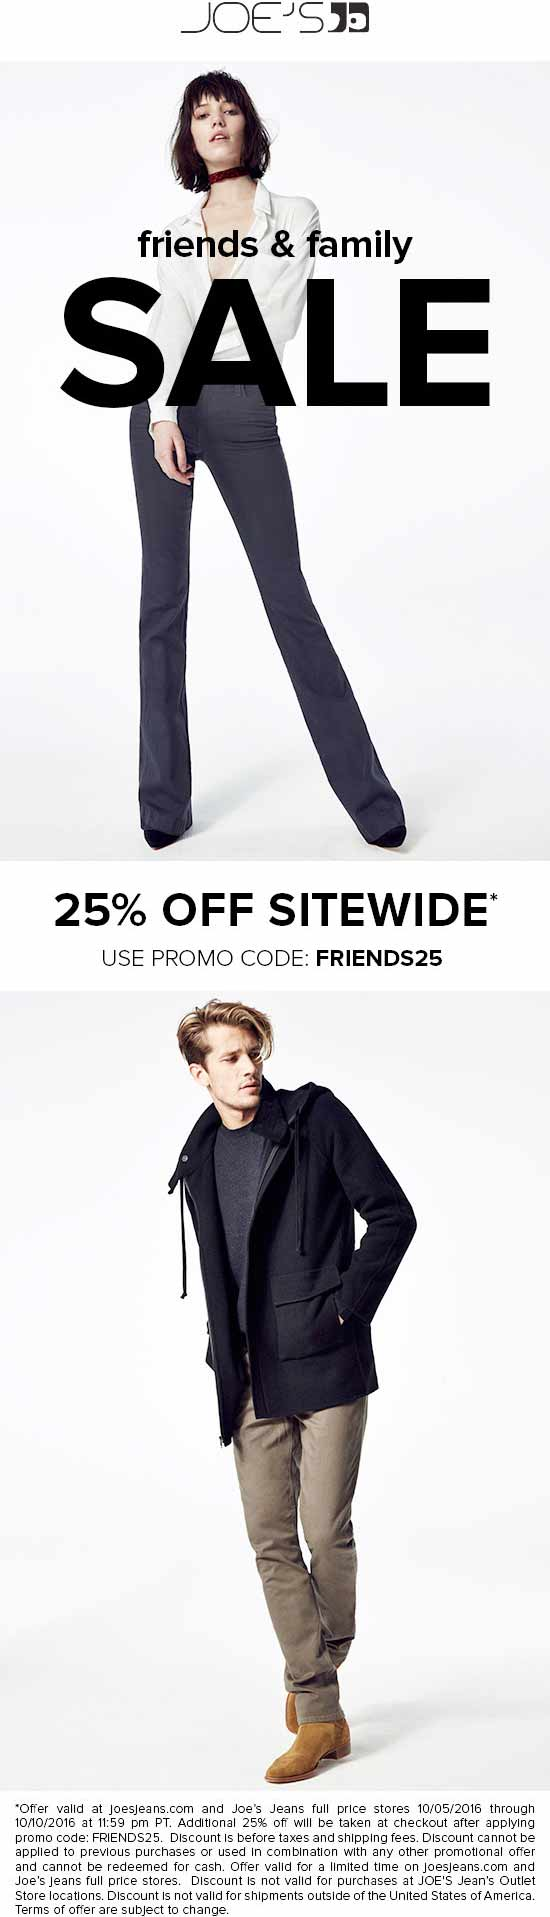 Joes Jeans Coupon March 2018 25% of at Joes Jeans, or online via promo code FRIENDS25